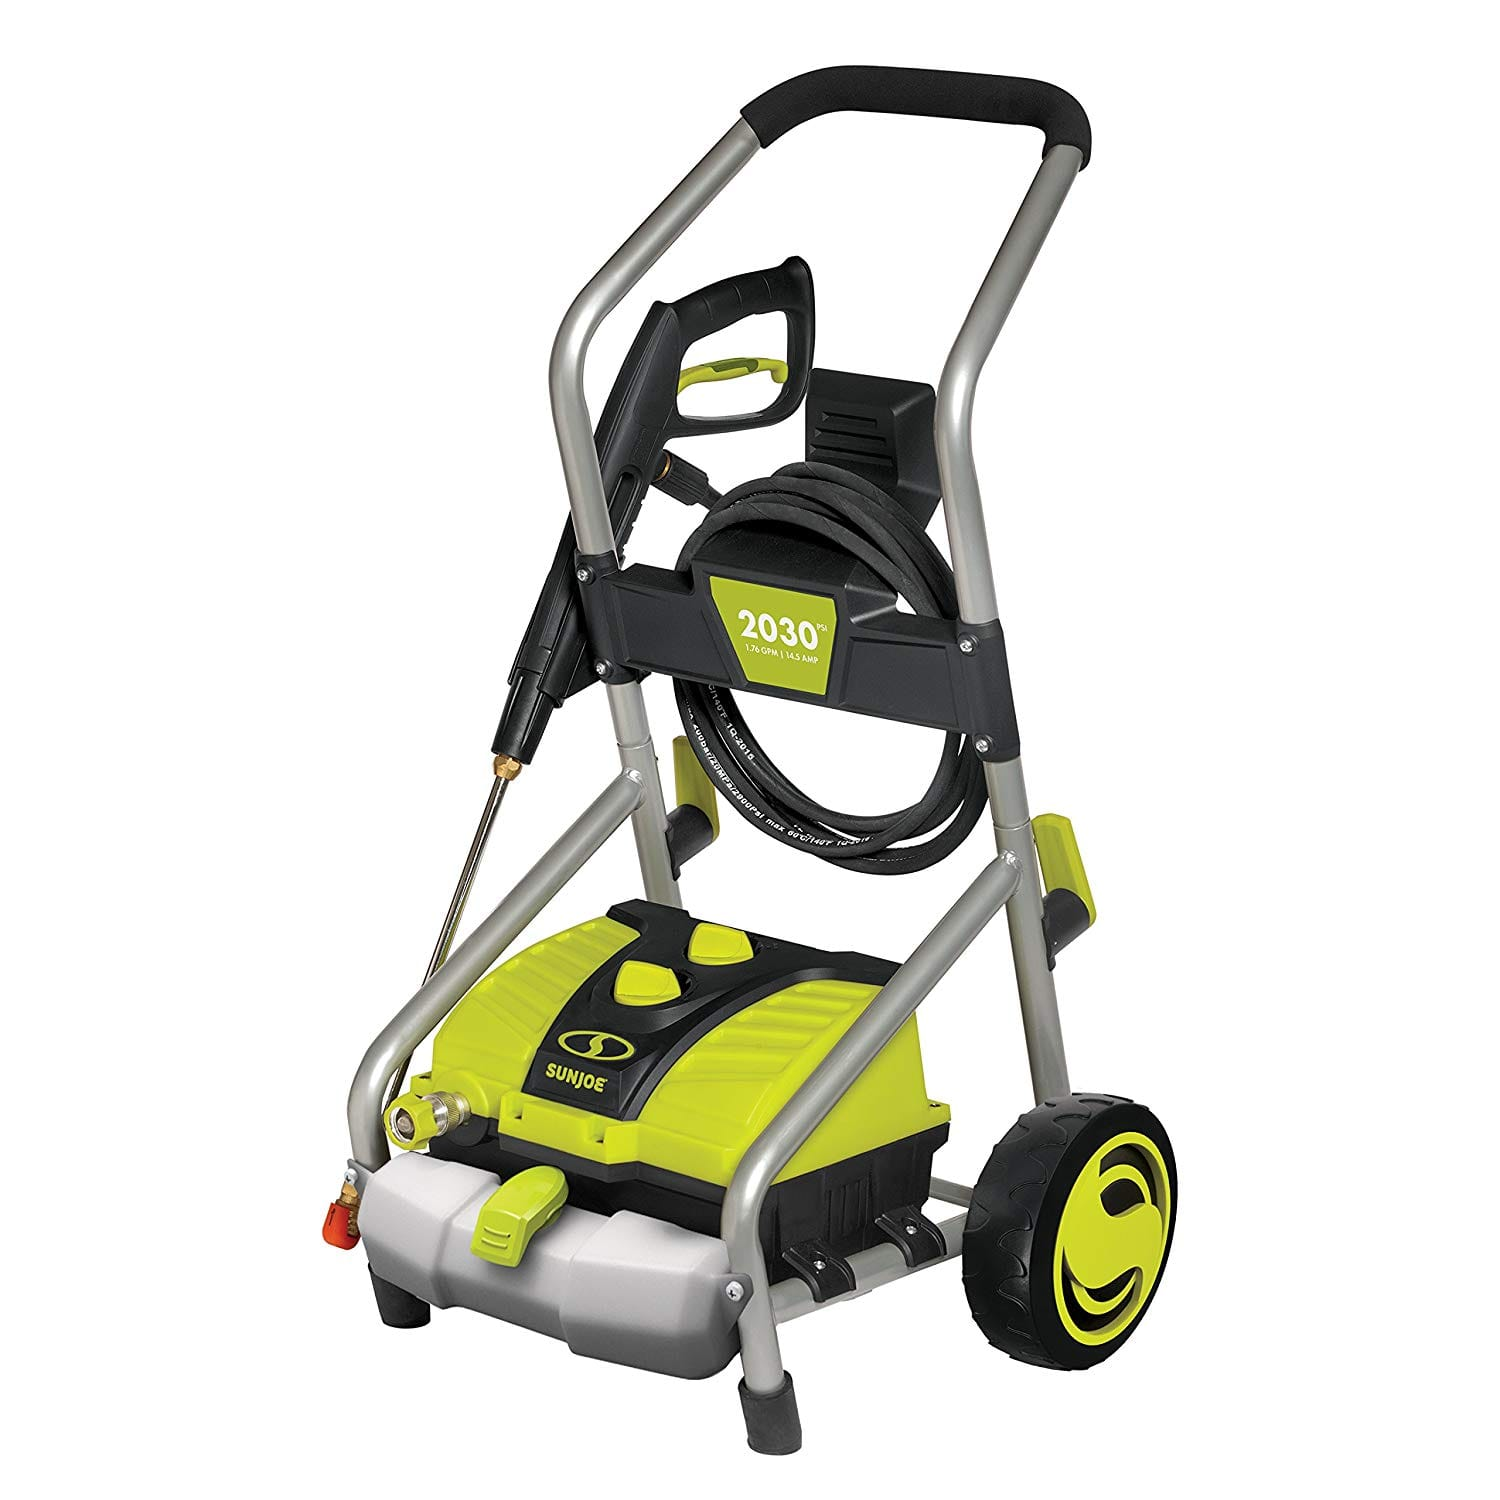 Sun Joe SPX4000 2030 PSI 1.76 GPM 14.5-Amp Electric Pressure Washer $118 + Free Shipping